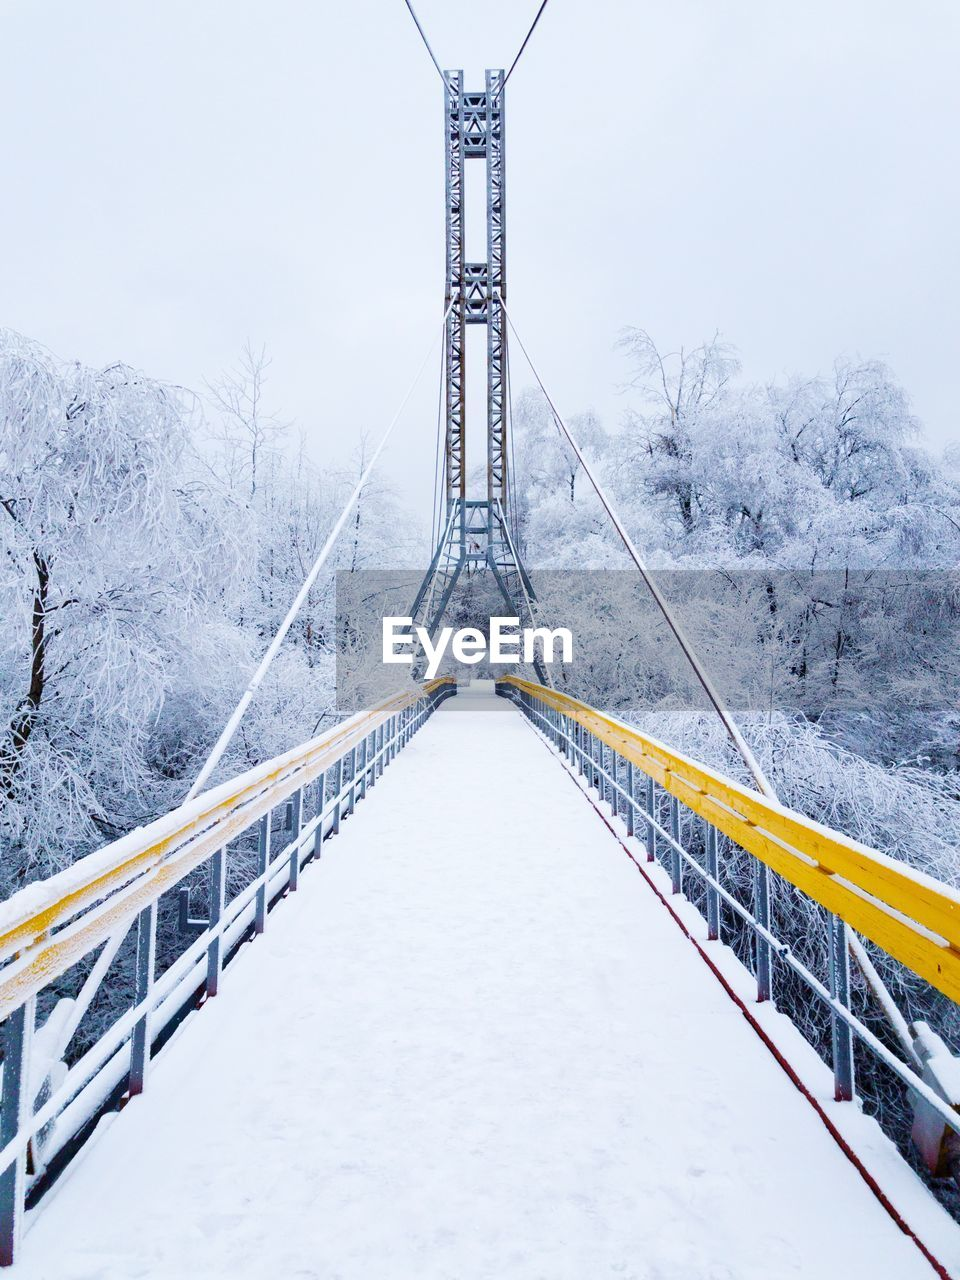 snow, winter, connection, cold temperature, bridge - man made structure, weather, the way forward, day, outdoors, nature, no people, transportation, suspension bridge, cable, fog, sky, architecture, beauty in nature